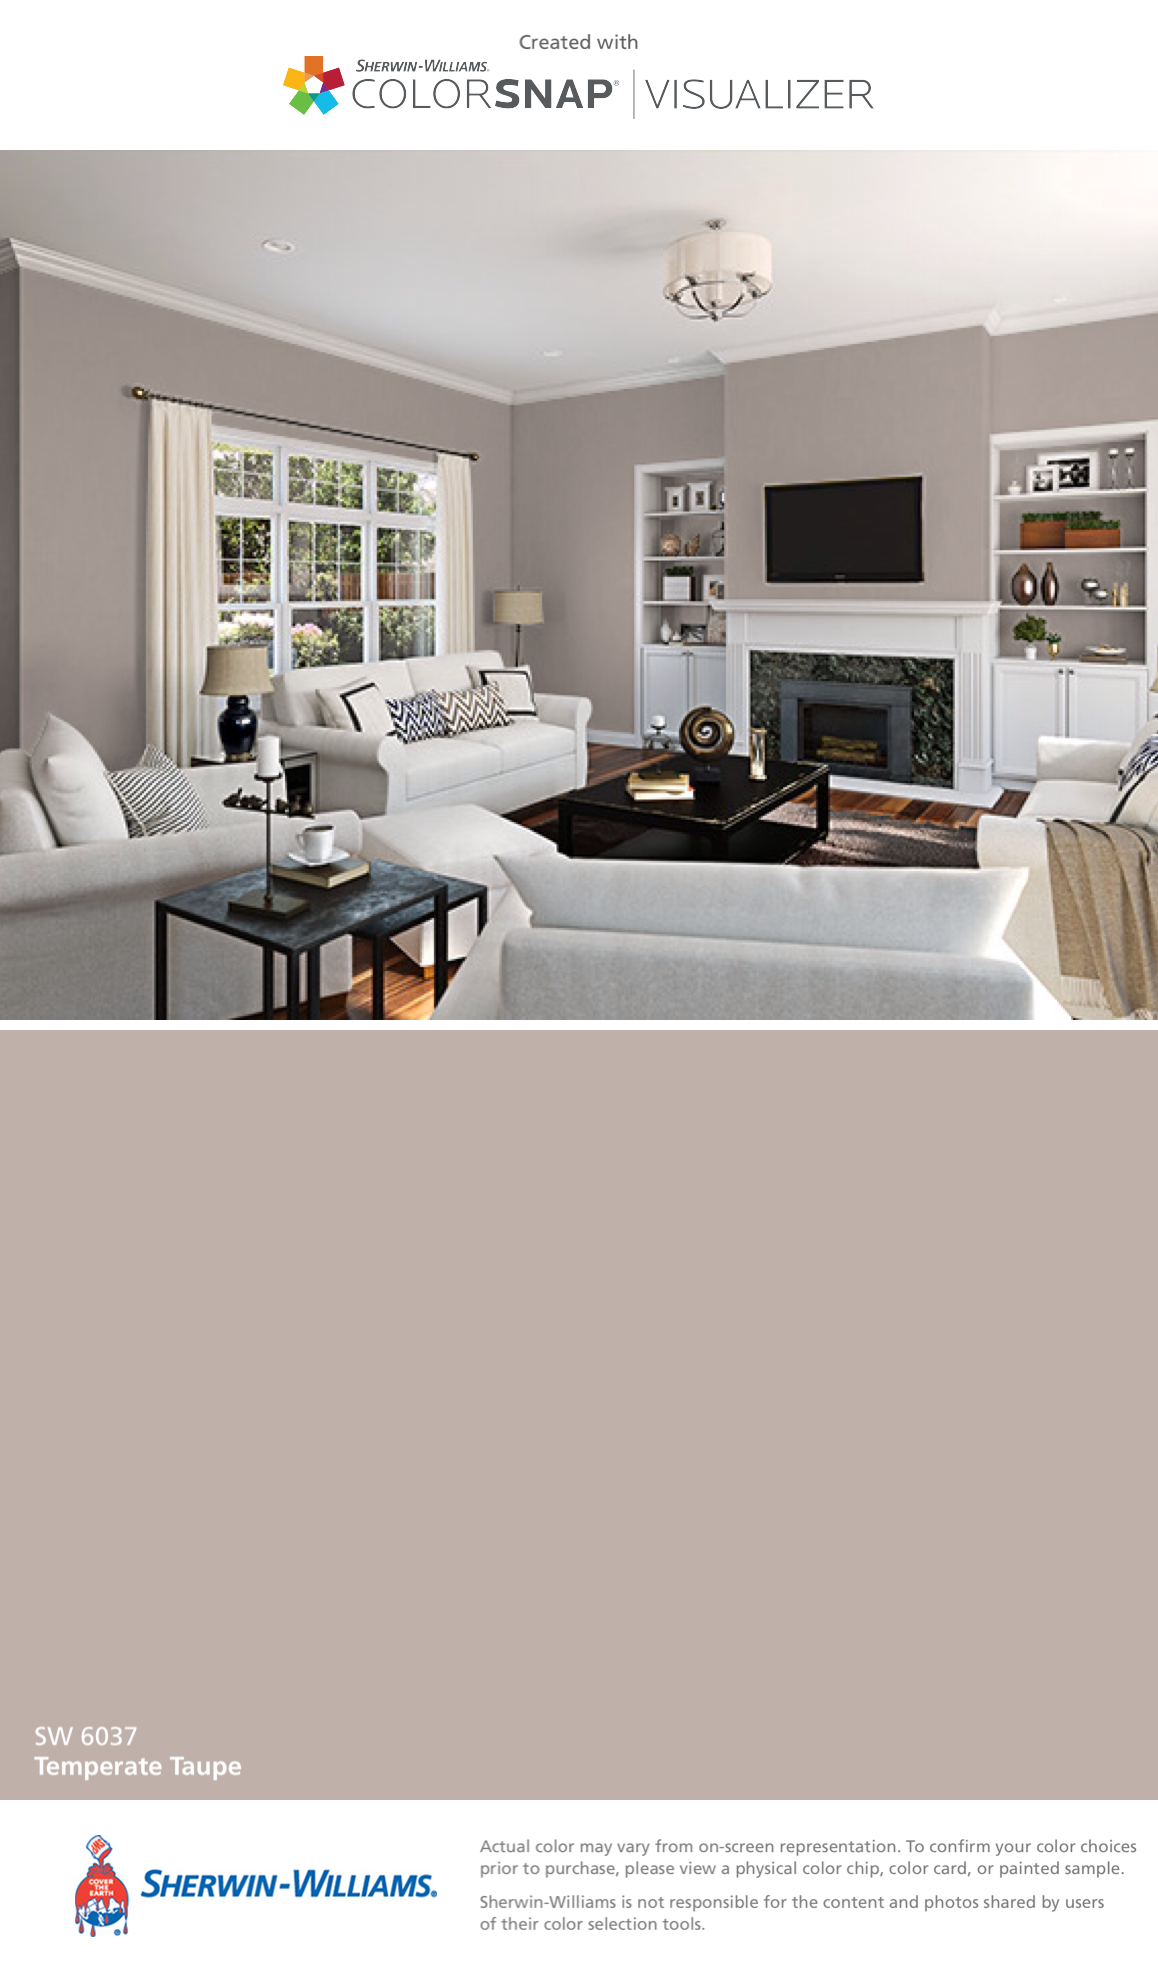 I Found This Color With Colorsnap Visualizer For Iphone By Sherwin Williams Temperate Taupe Sw 6037